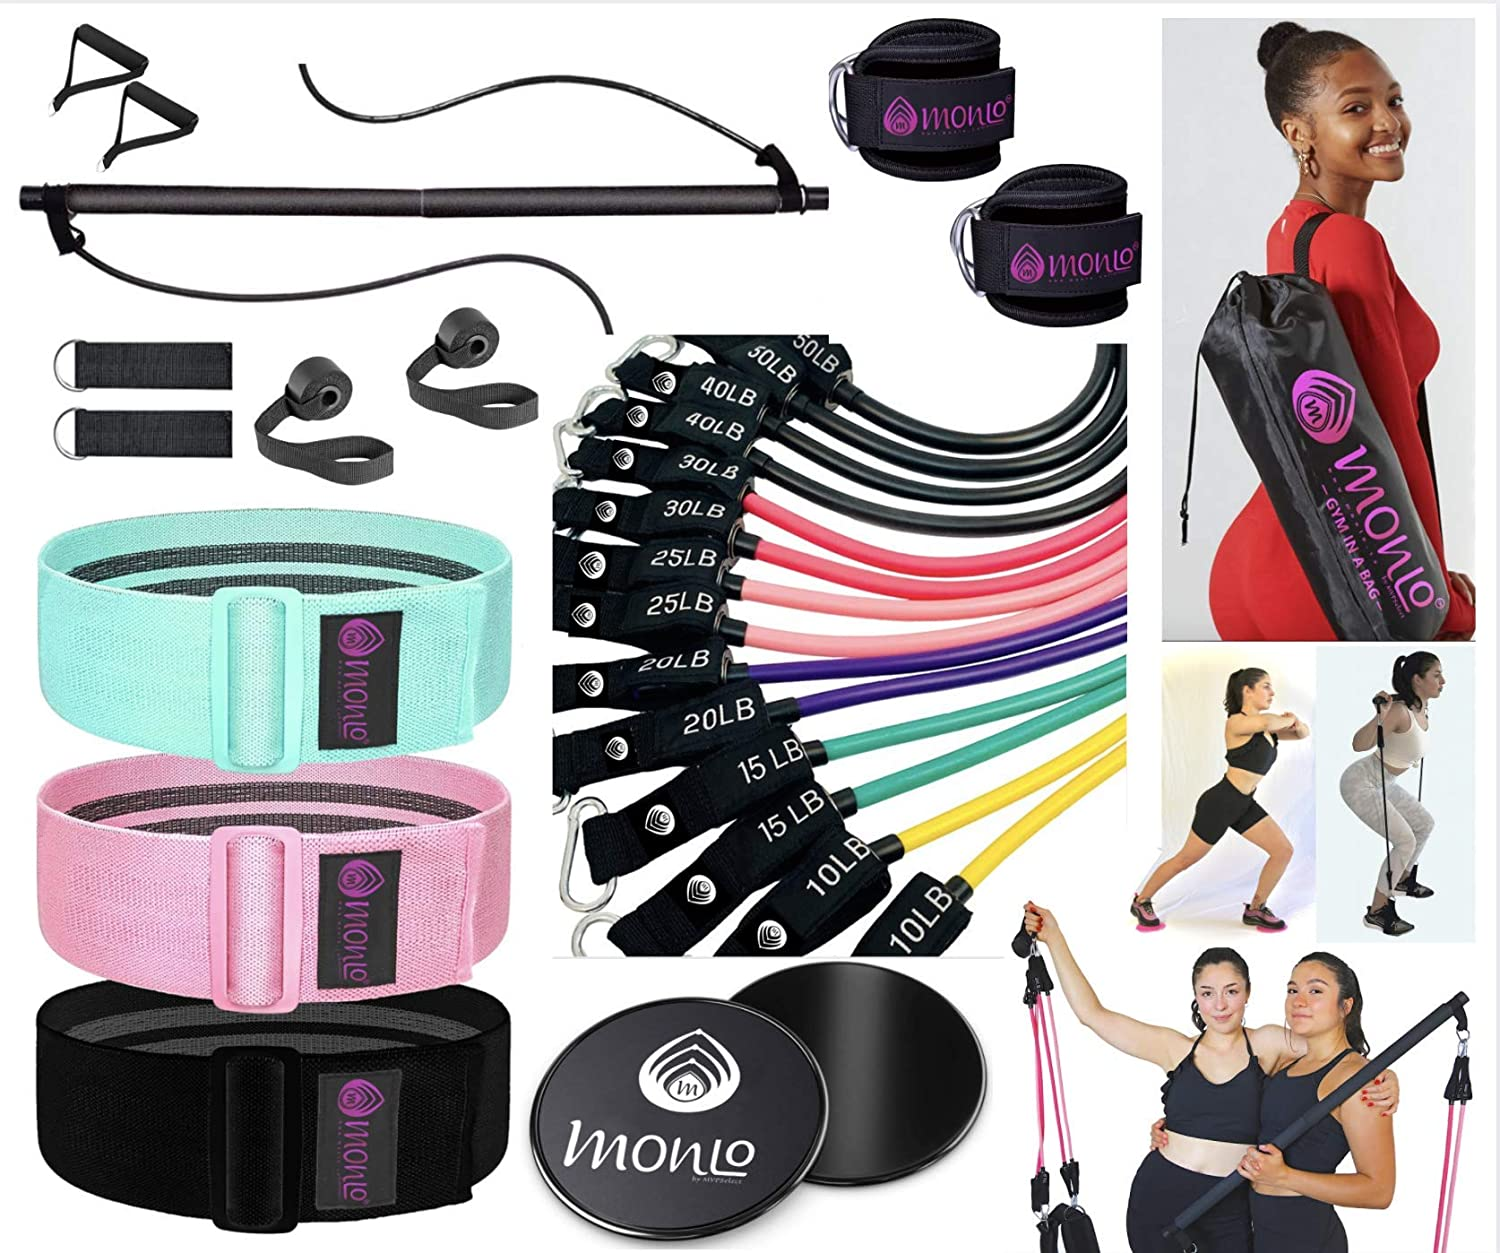 - Gym in A Bag - Bodygym Core System Portable Home Gym - Resistance Trainer All-in-One Resistance Bands + Bar Kit, Pairs of Door Anchor, Ankle Strap, Discs + Bag